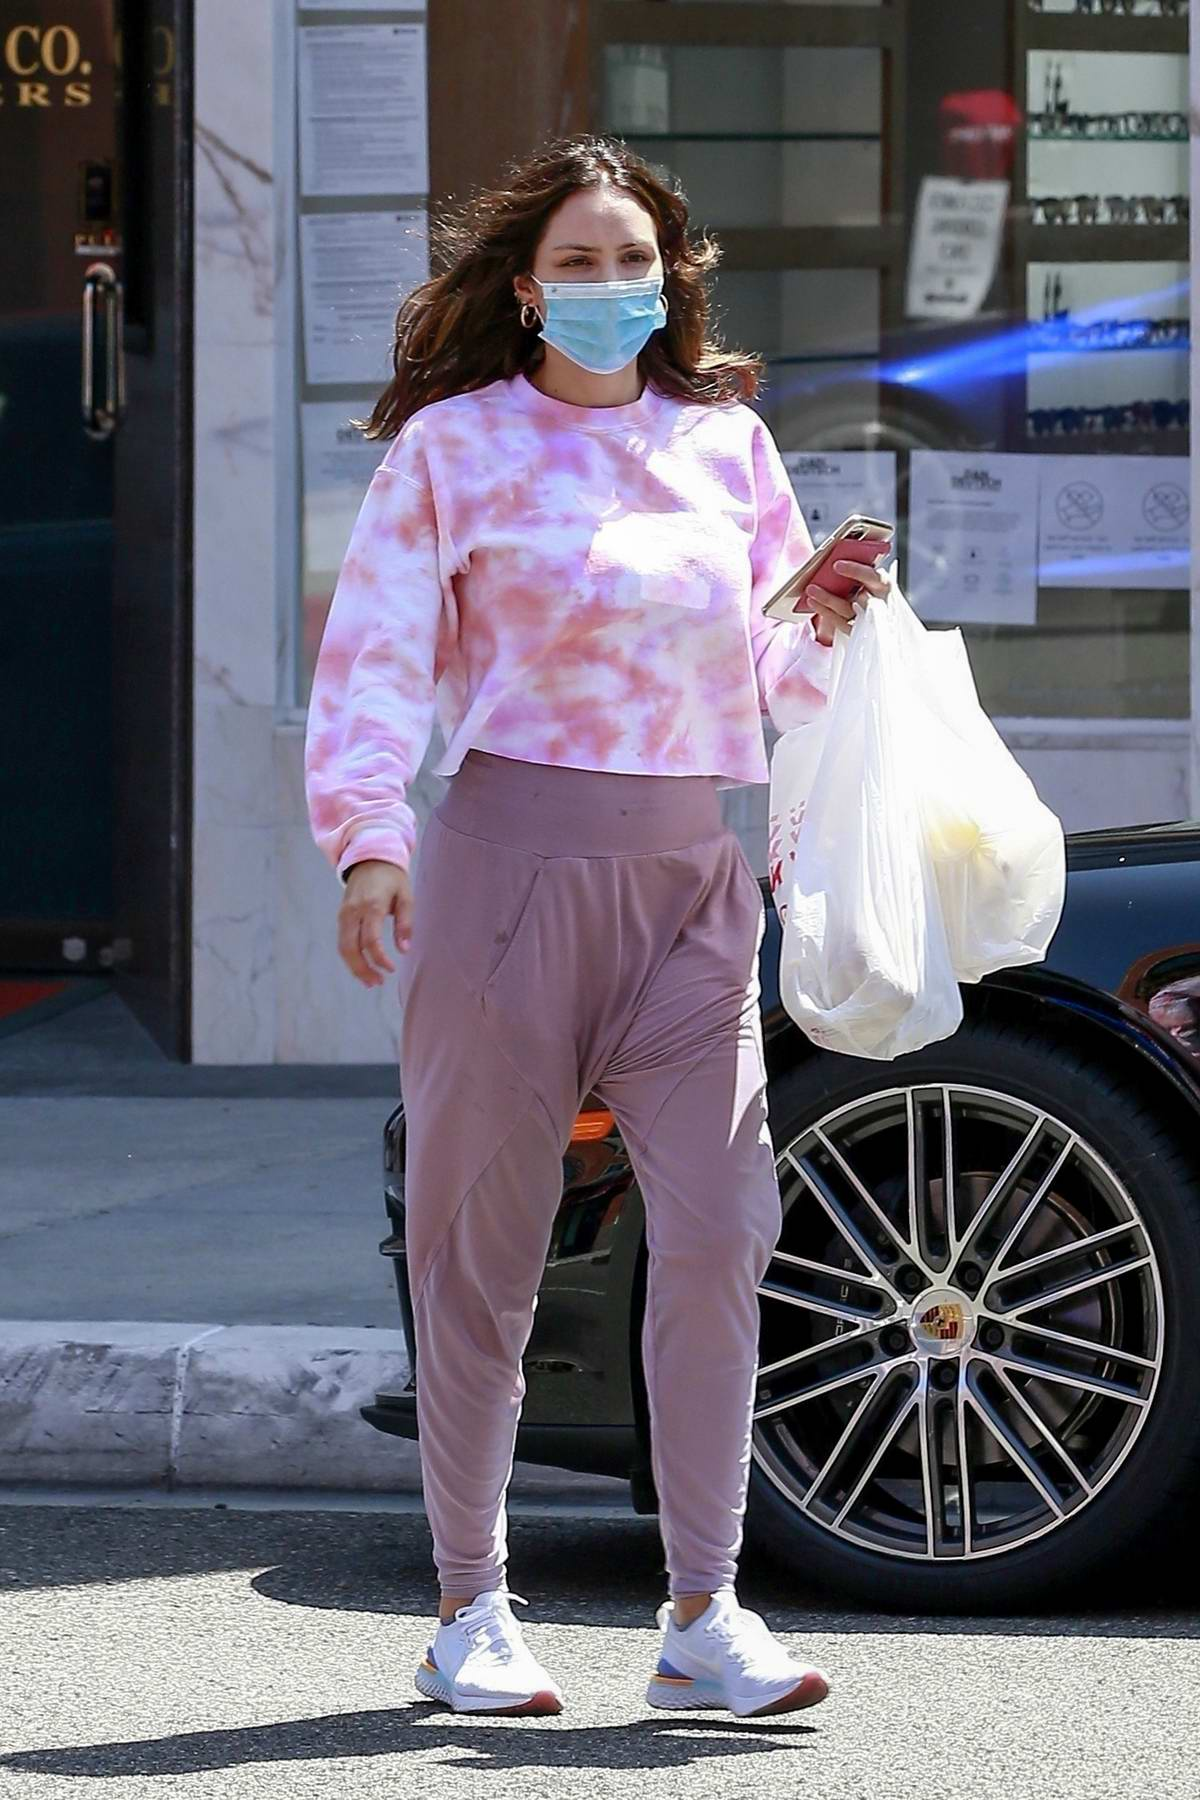 Katharine McPhee wears a tie-dye top as she steps out to pick up a food order in Beverly Hills, California